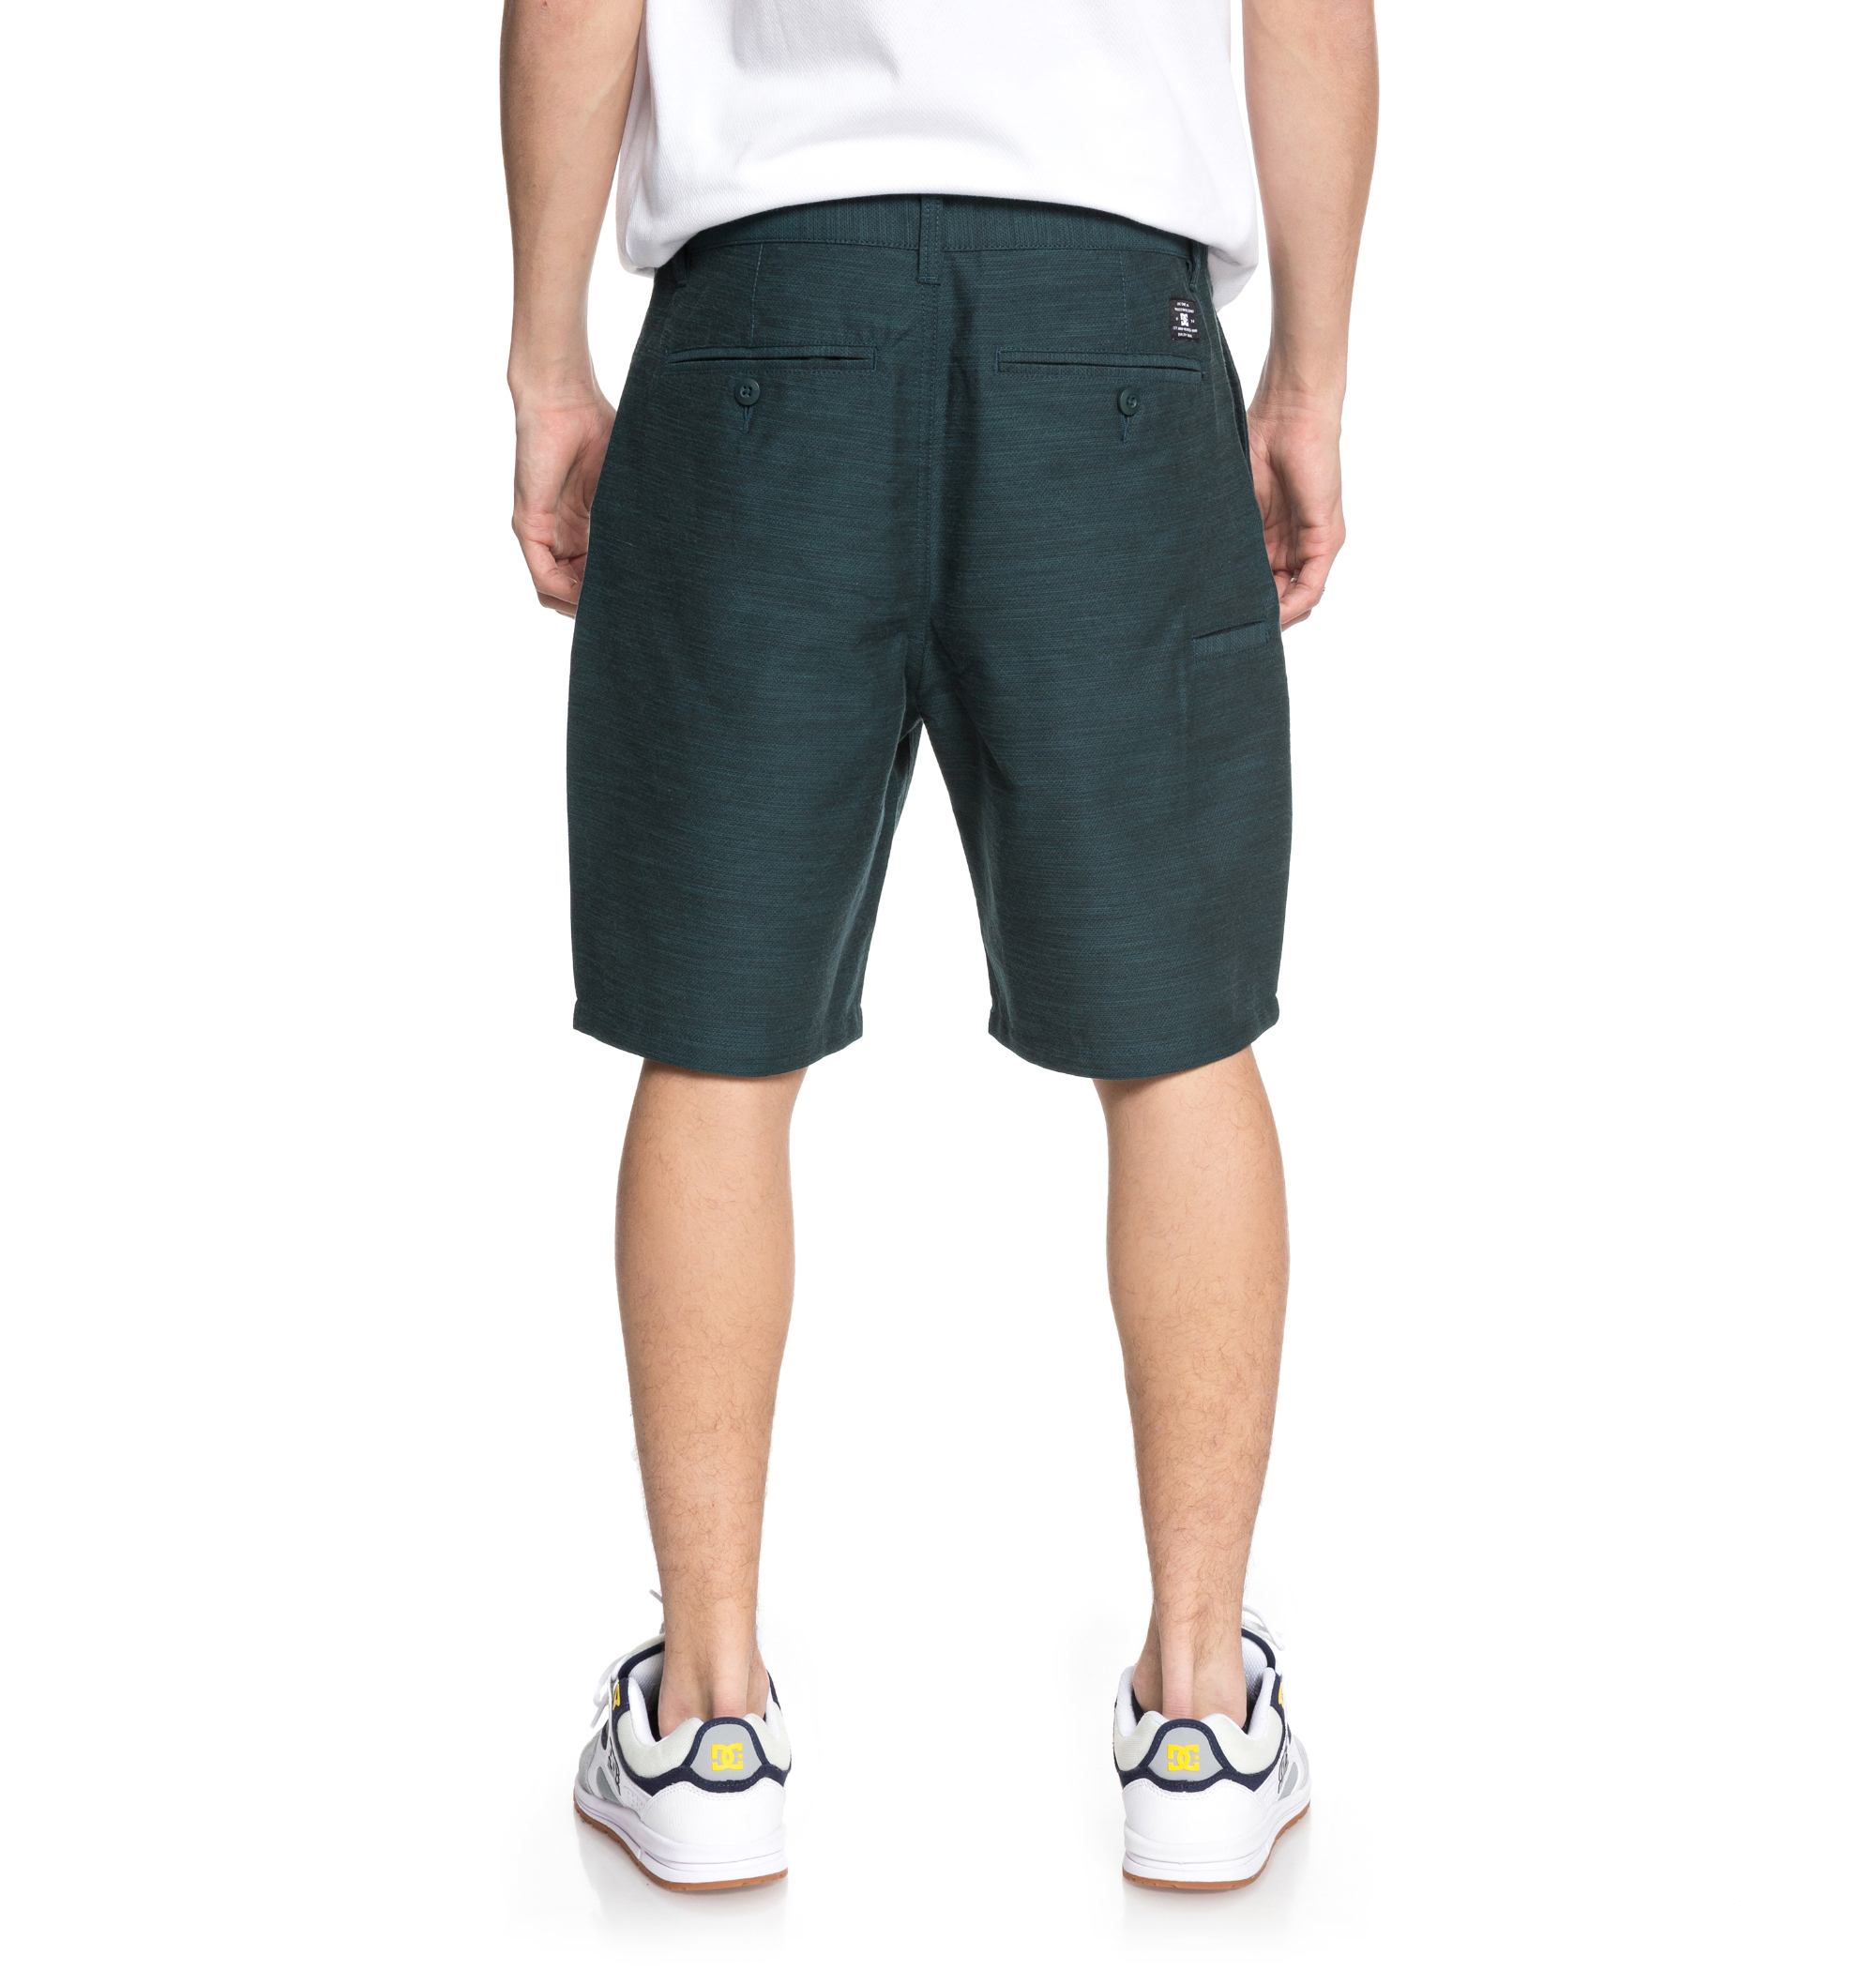 Pantalón Dc Shoes modelo Space Dot en color verde para hombre-d